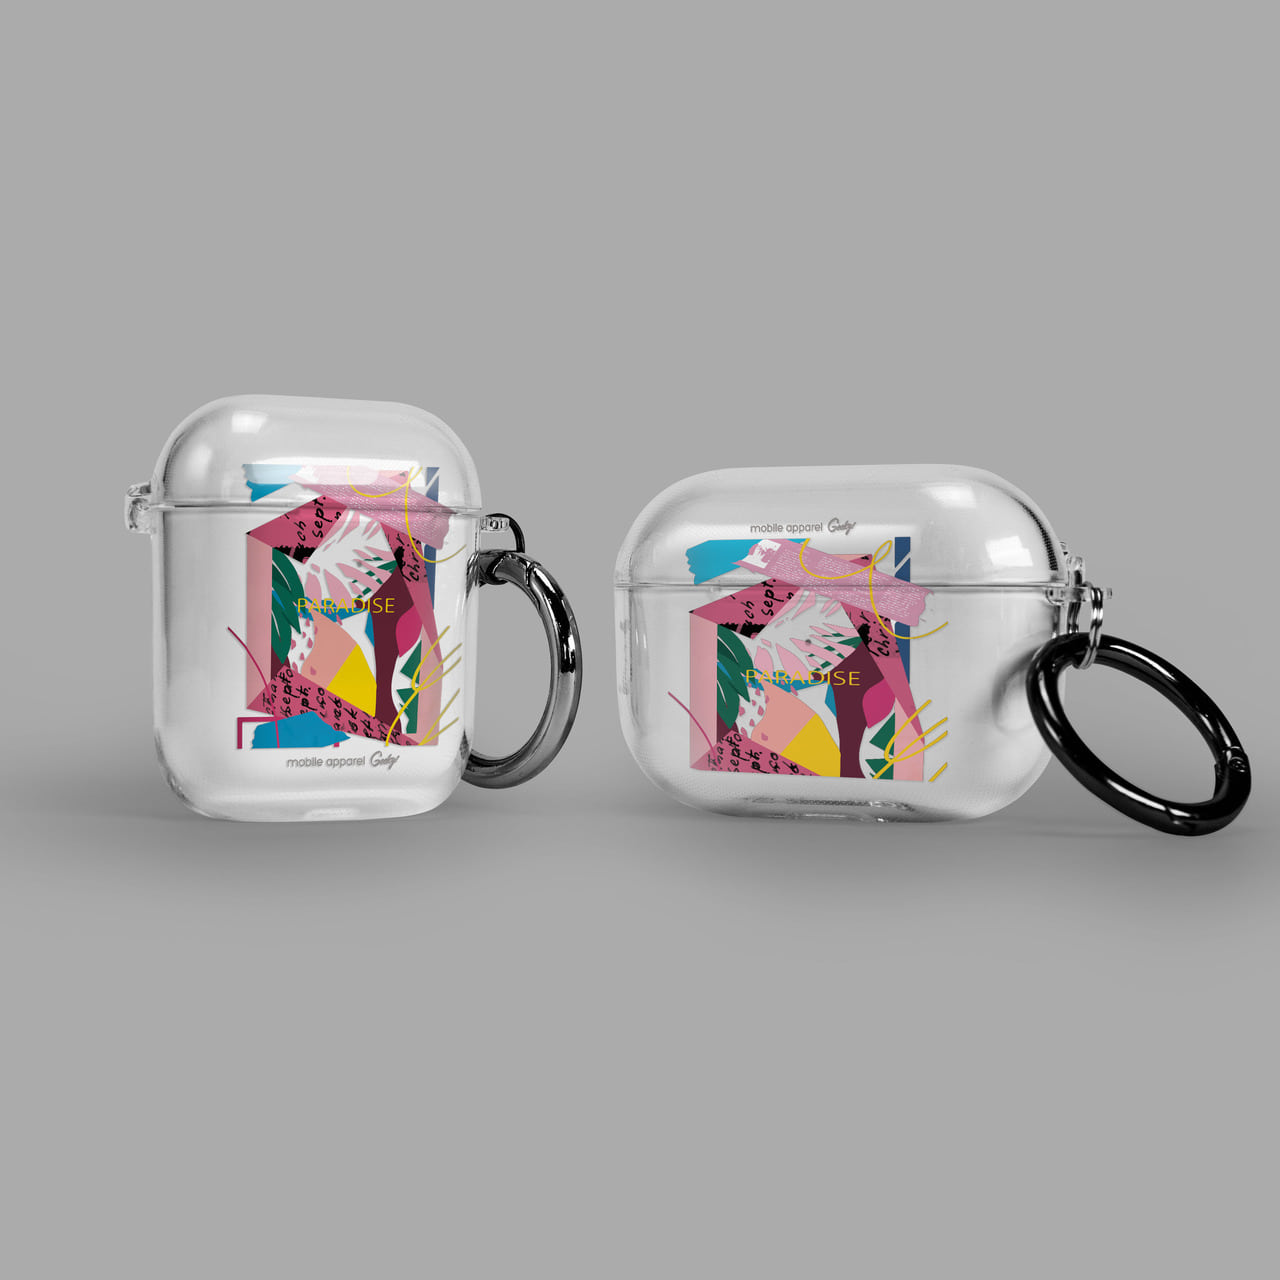 [Airpods cases] Holiday no.03